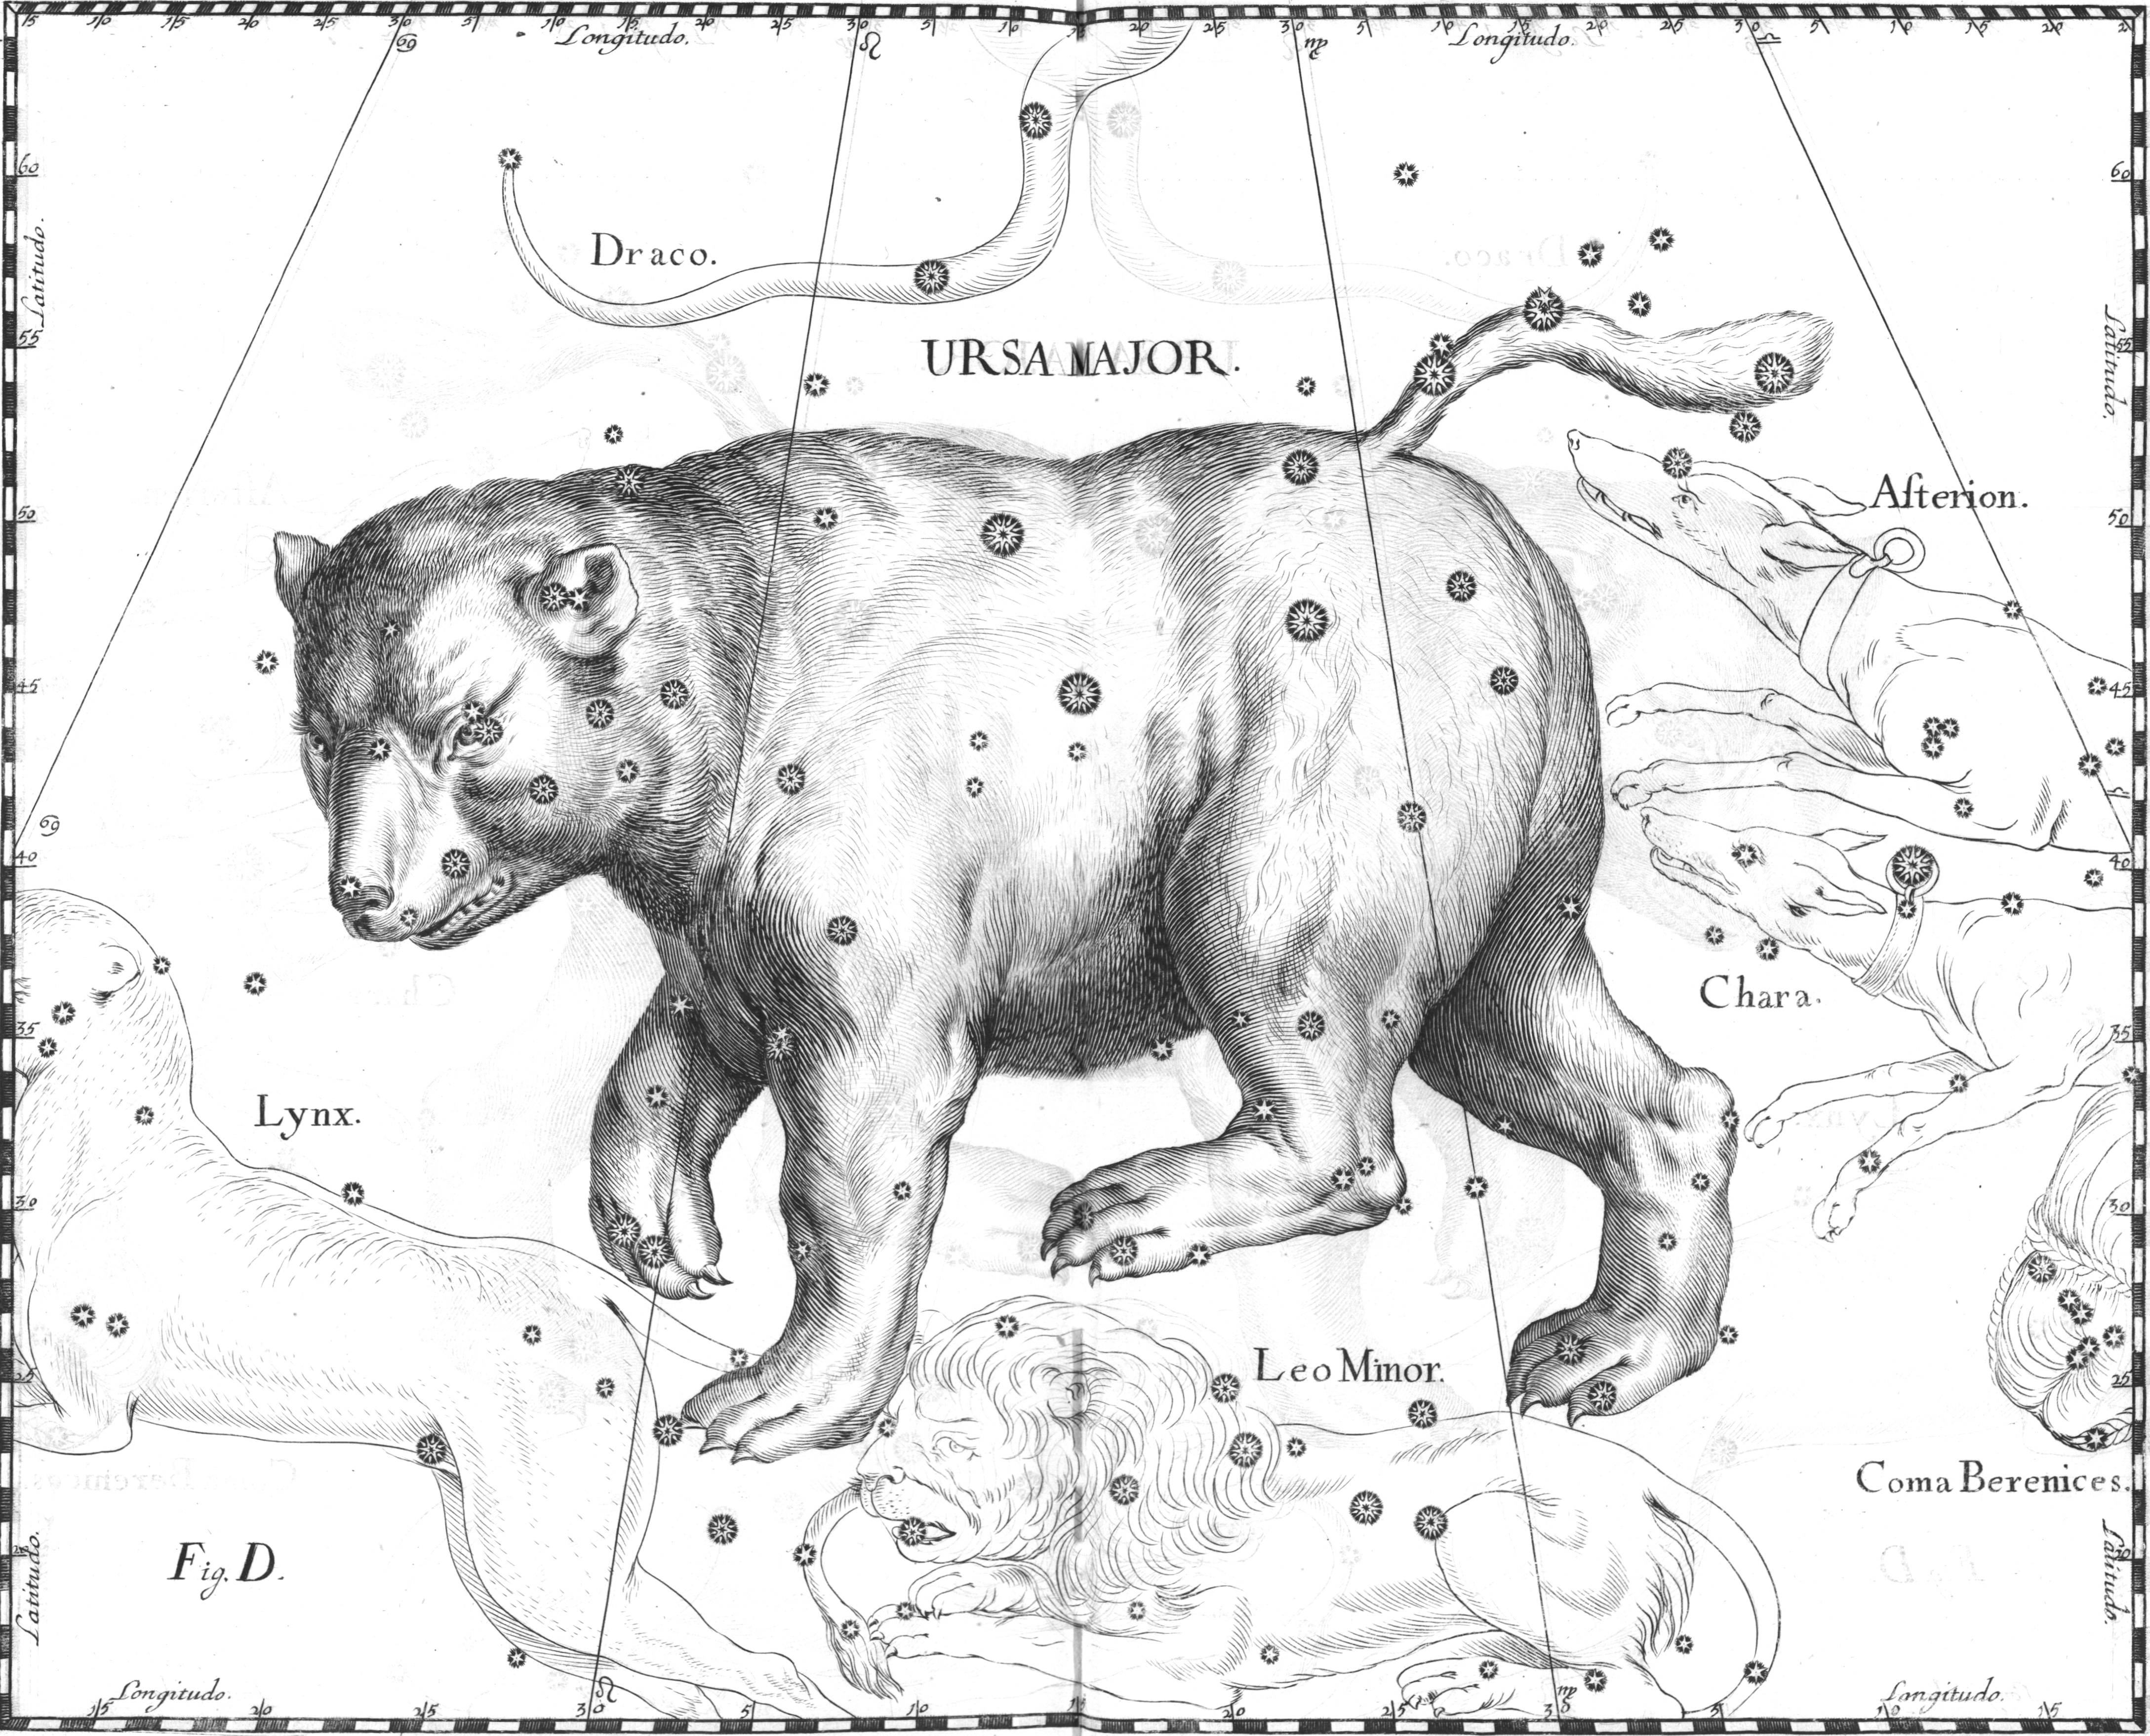 File:Ursa Major constellation Hevelius.jpg - Wikipedia, the free ...